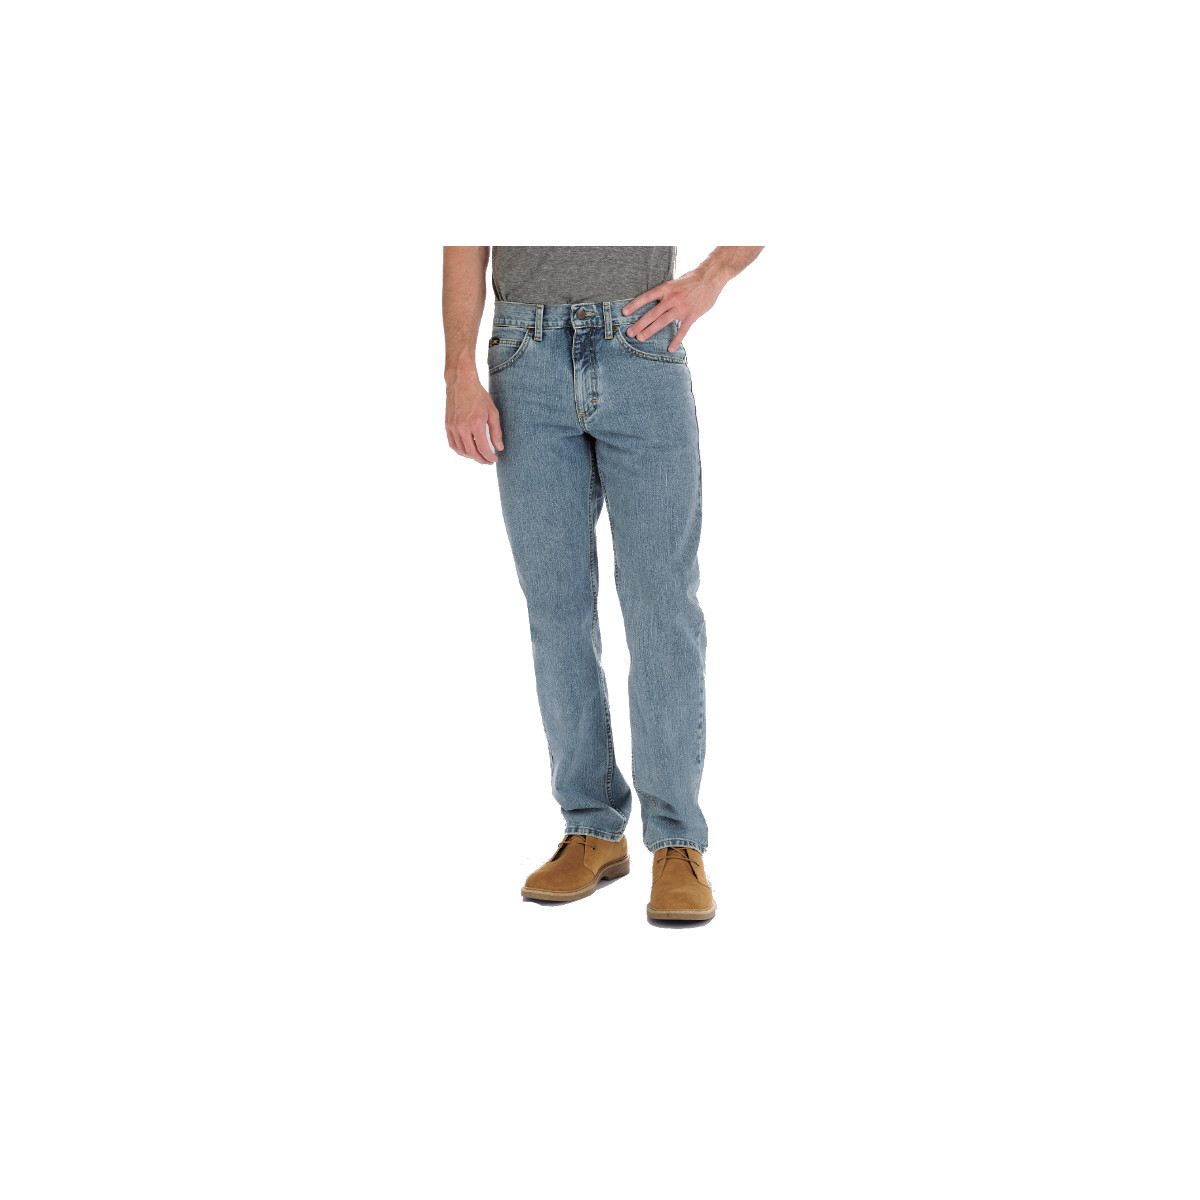 LEE Men's Relaxed Fit Tapered Leg Jeans